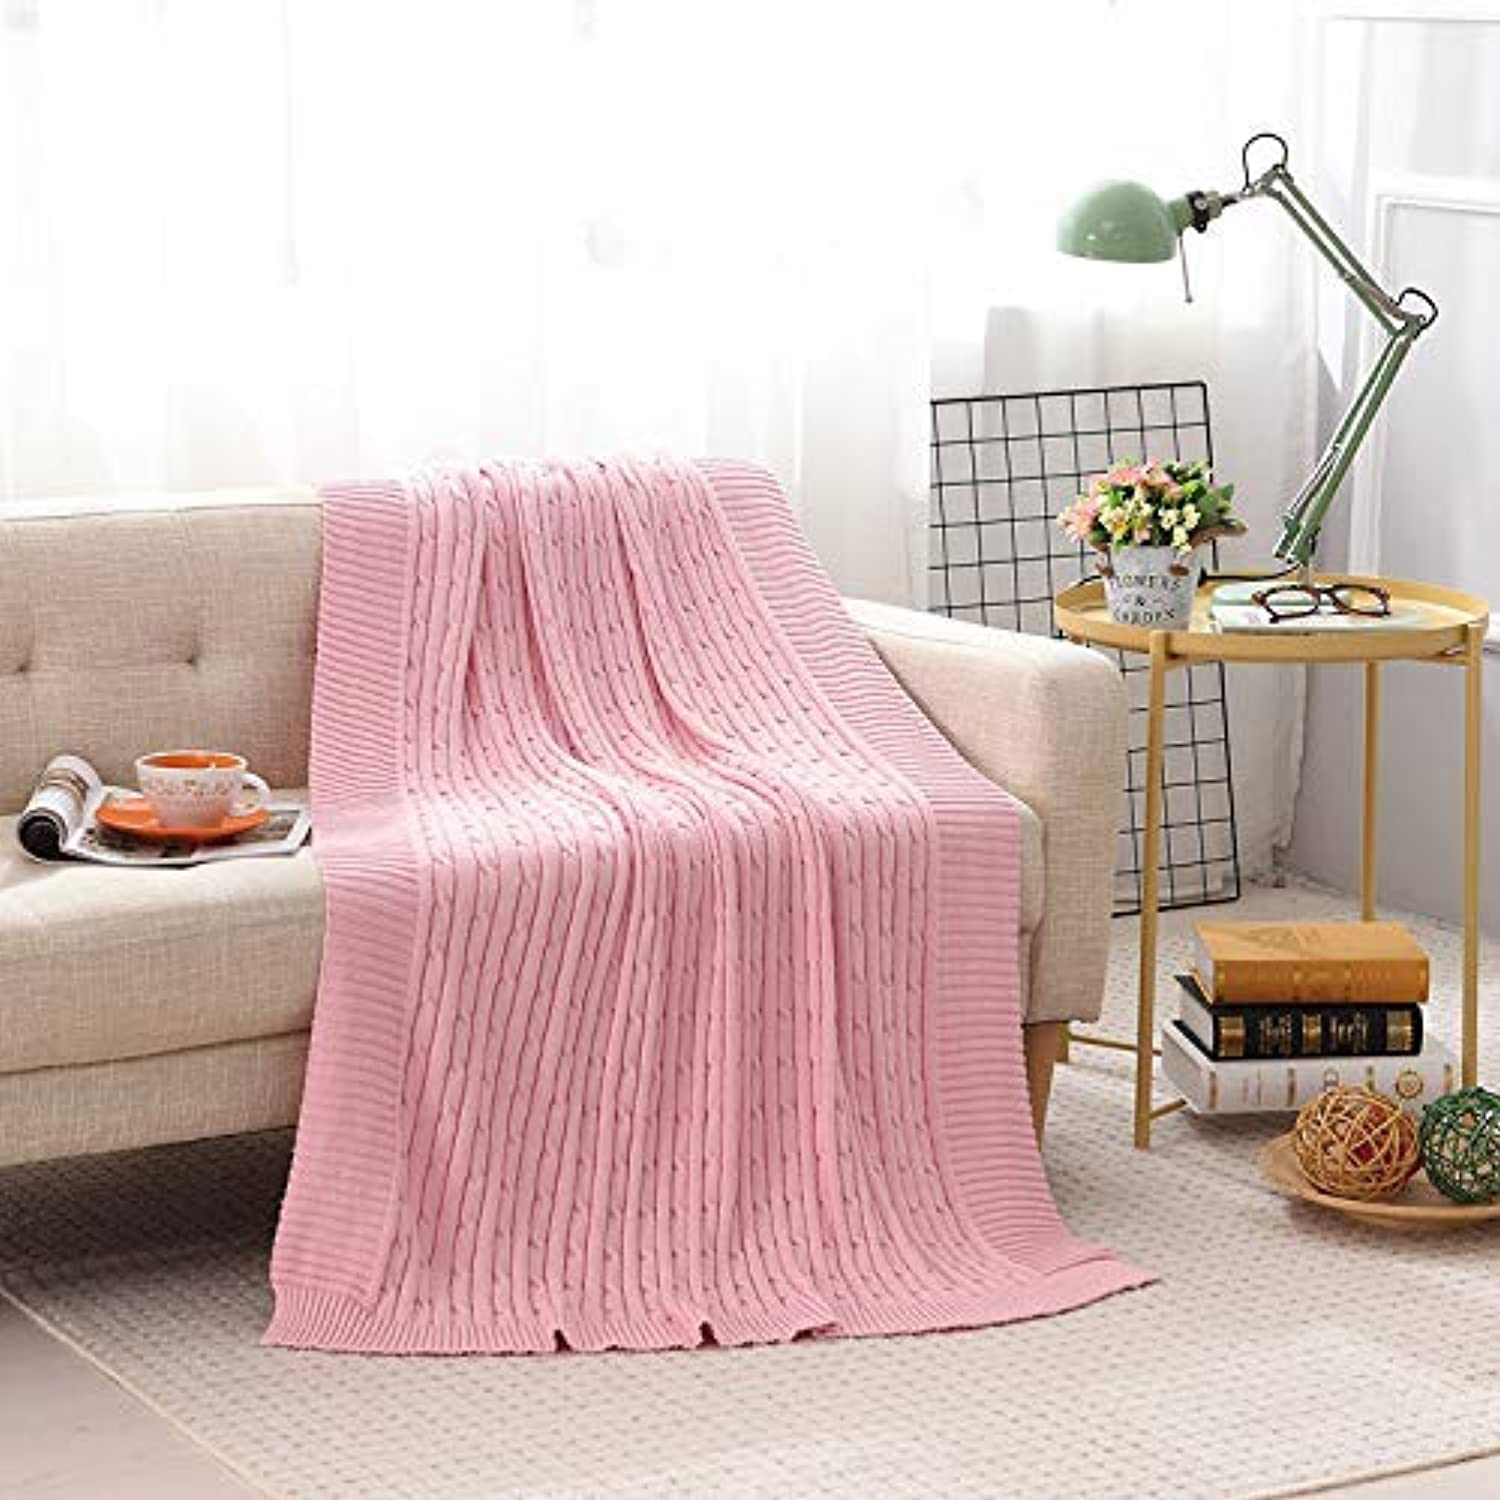 JINGB Home Cotton Knit Blanket Small Linen Flower Thread Blanket Baby Blankets air Travel and Leisure Sofa Blanket Pink,180cm200cm (Size   120cm180cm)